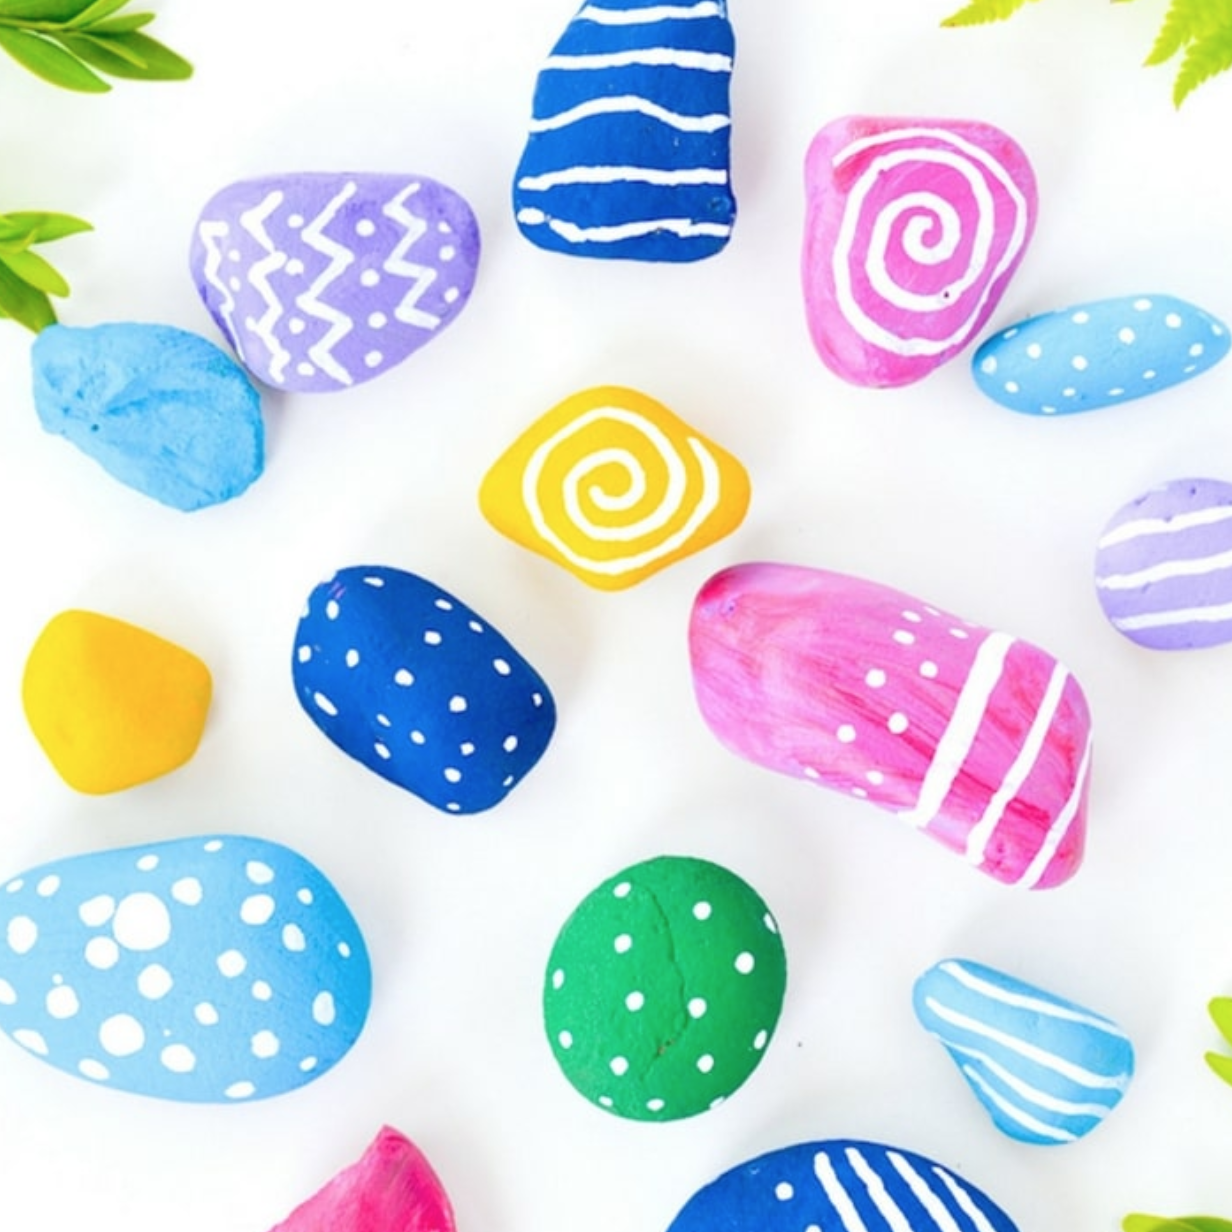 Here is a fun painted rock art craft to try out with the kiddos!     #AZ529 #Savings #ArtsAndCrafts #FamilyFun #PaintedRocks